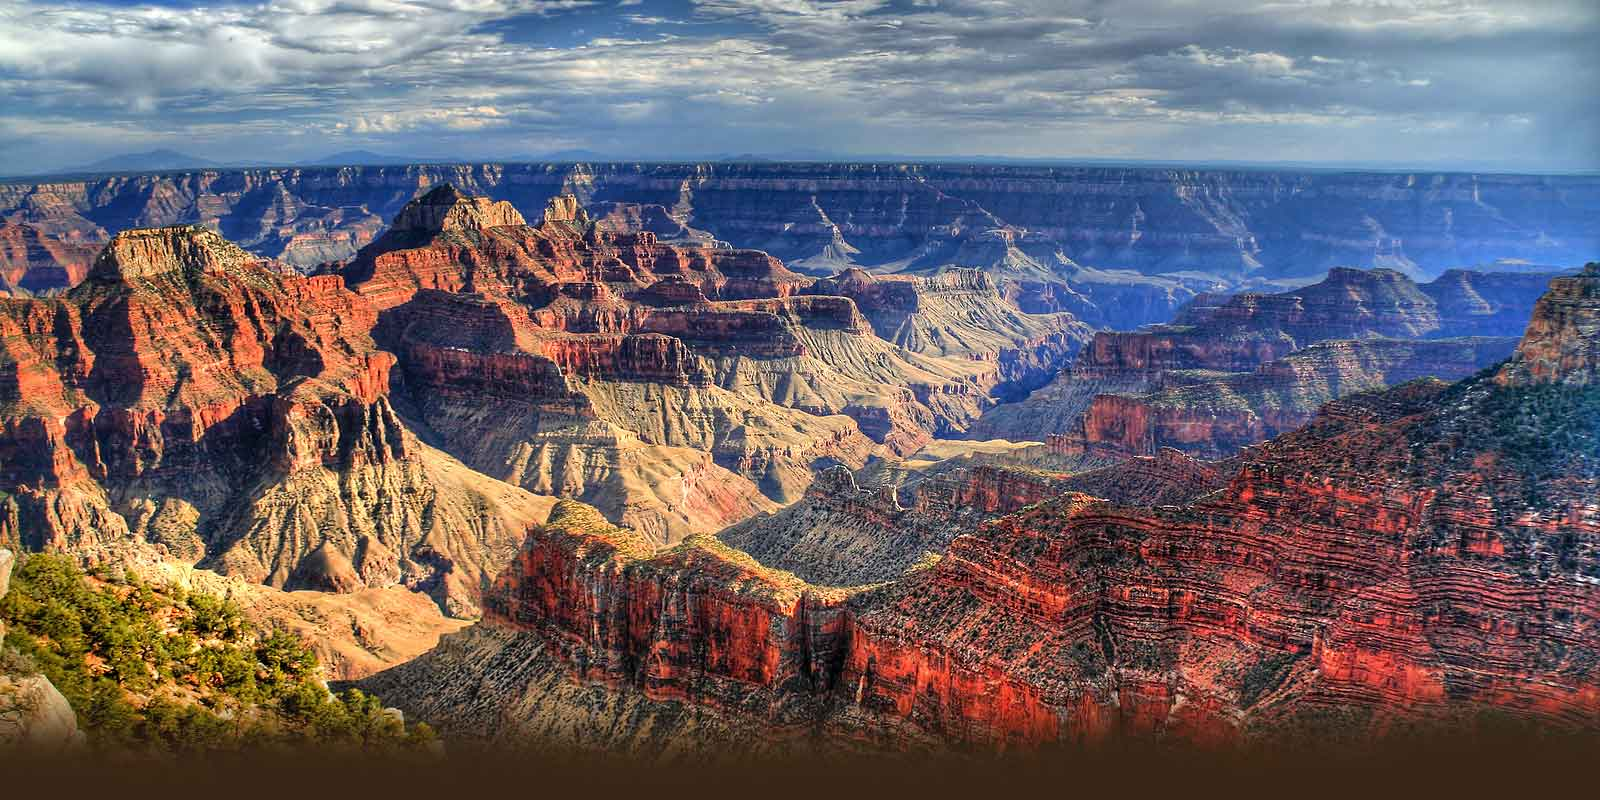 The ever-changing palate of the majestic Grand Canyon. Depending on who you ask, the canyon is over six million years old or less than two thousand. When the same group was asked when did dinosaurs roam the earth, answers ranged from 10 million years ago to last week.